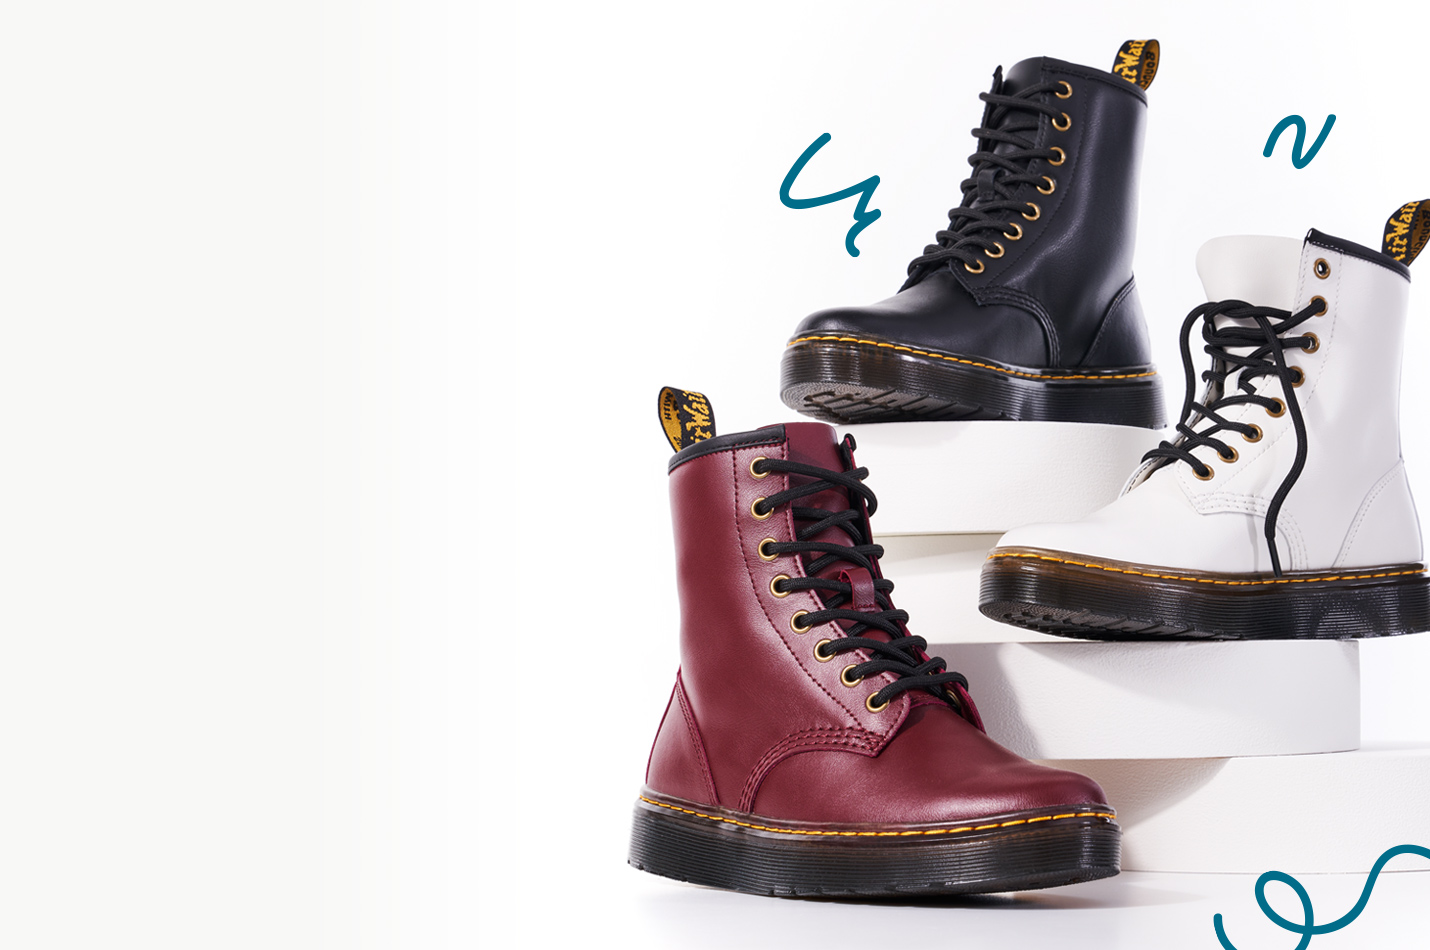 assorted dr.martens boots